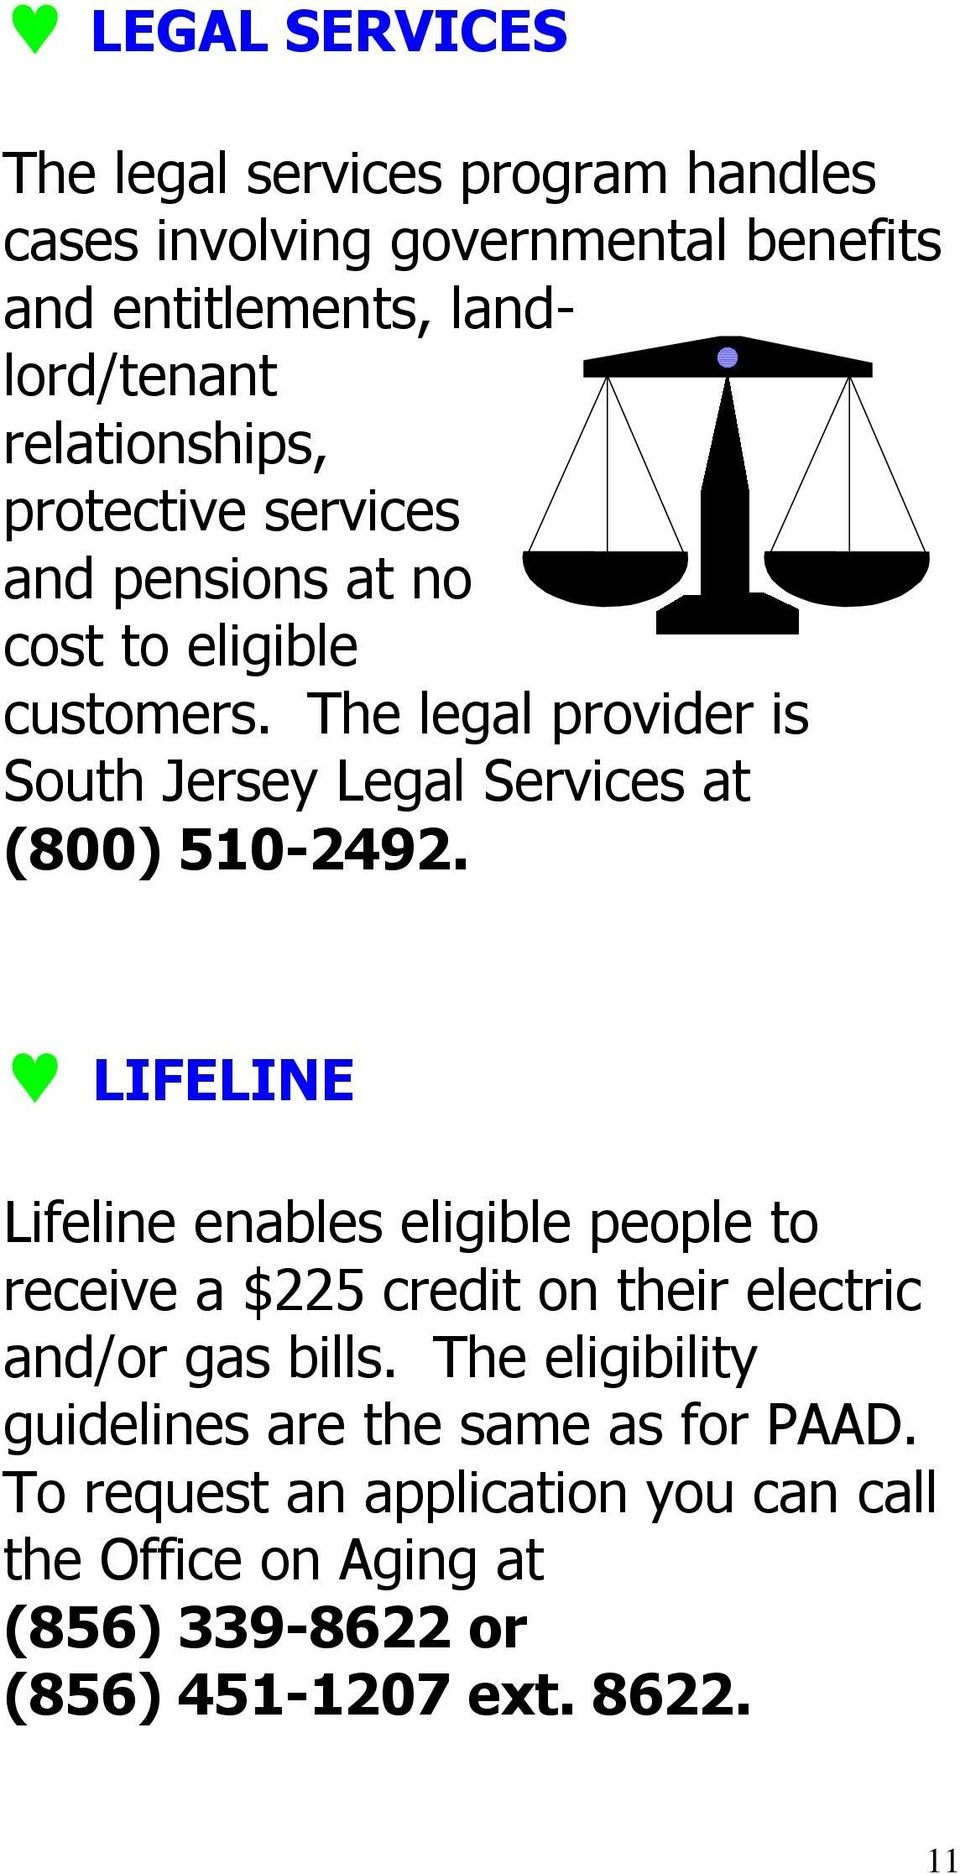 The legal provider is South Jersey Legal Services at (800) 510-2492.